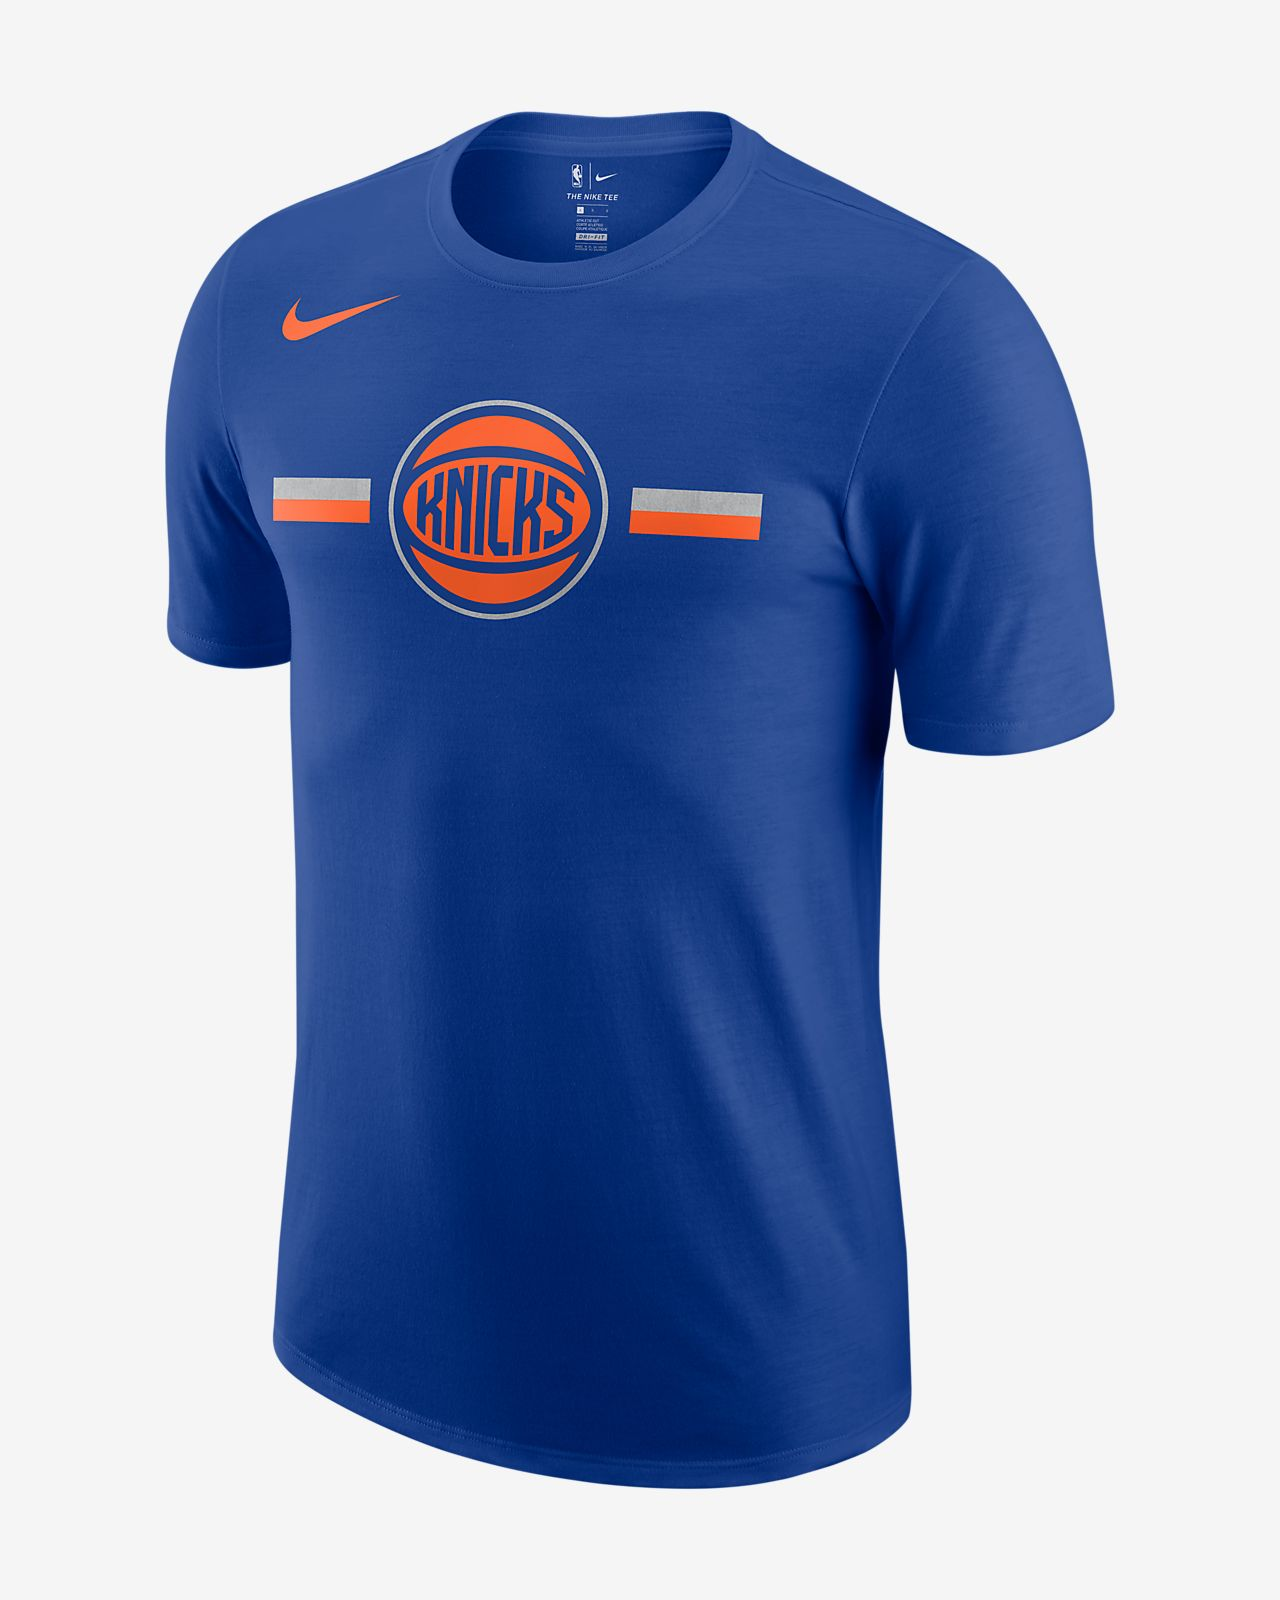 12487c31b603 New York Knicks Nike Dri-FIT Men s NBA T-Shirt. Nike.com